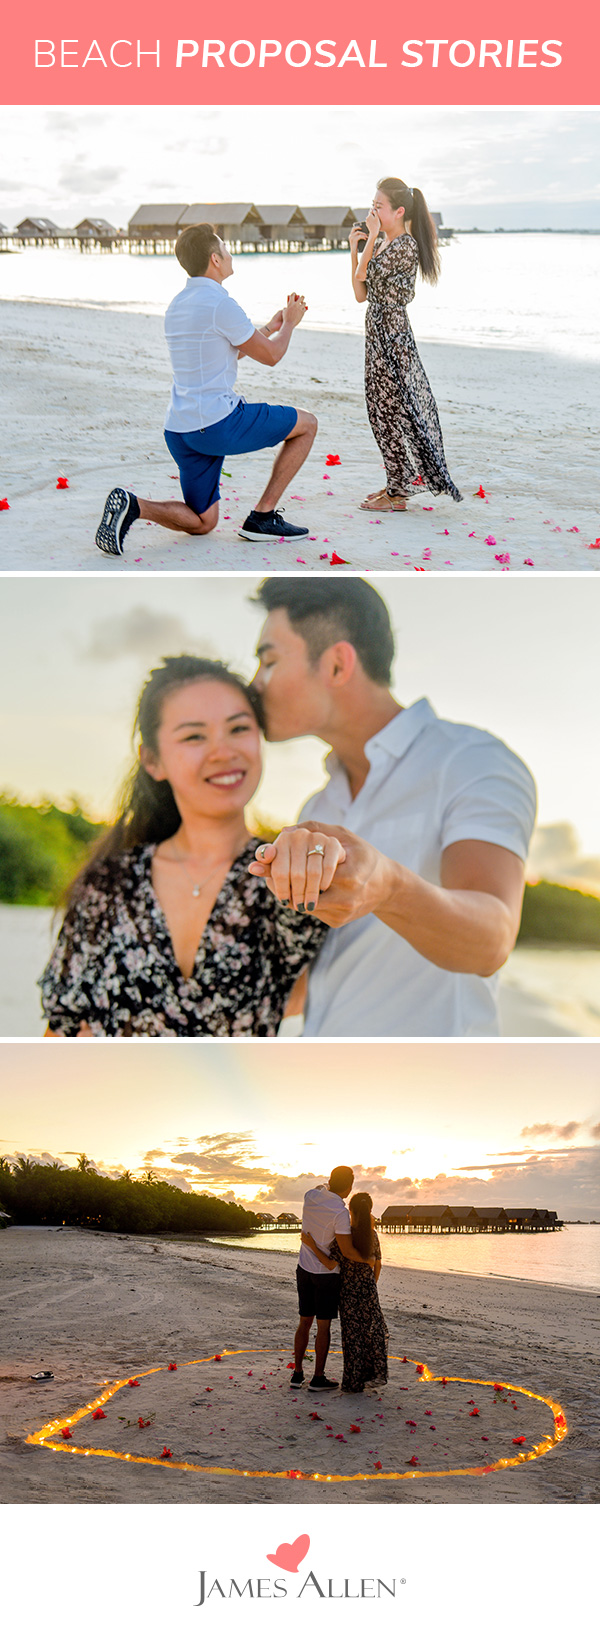 beach proposal stories pinterest pin